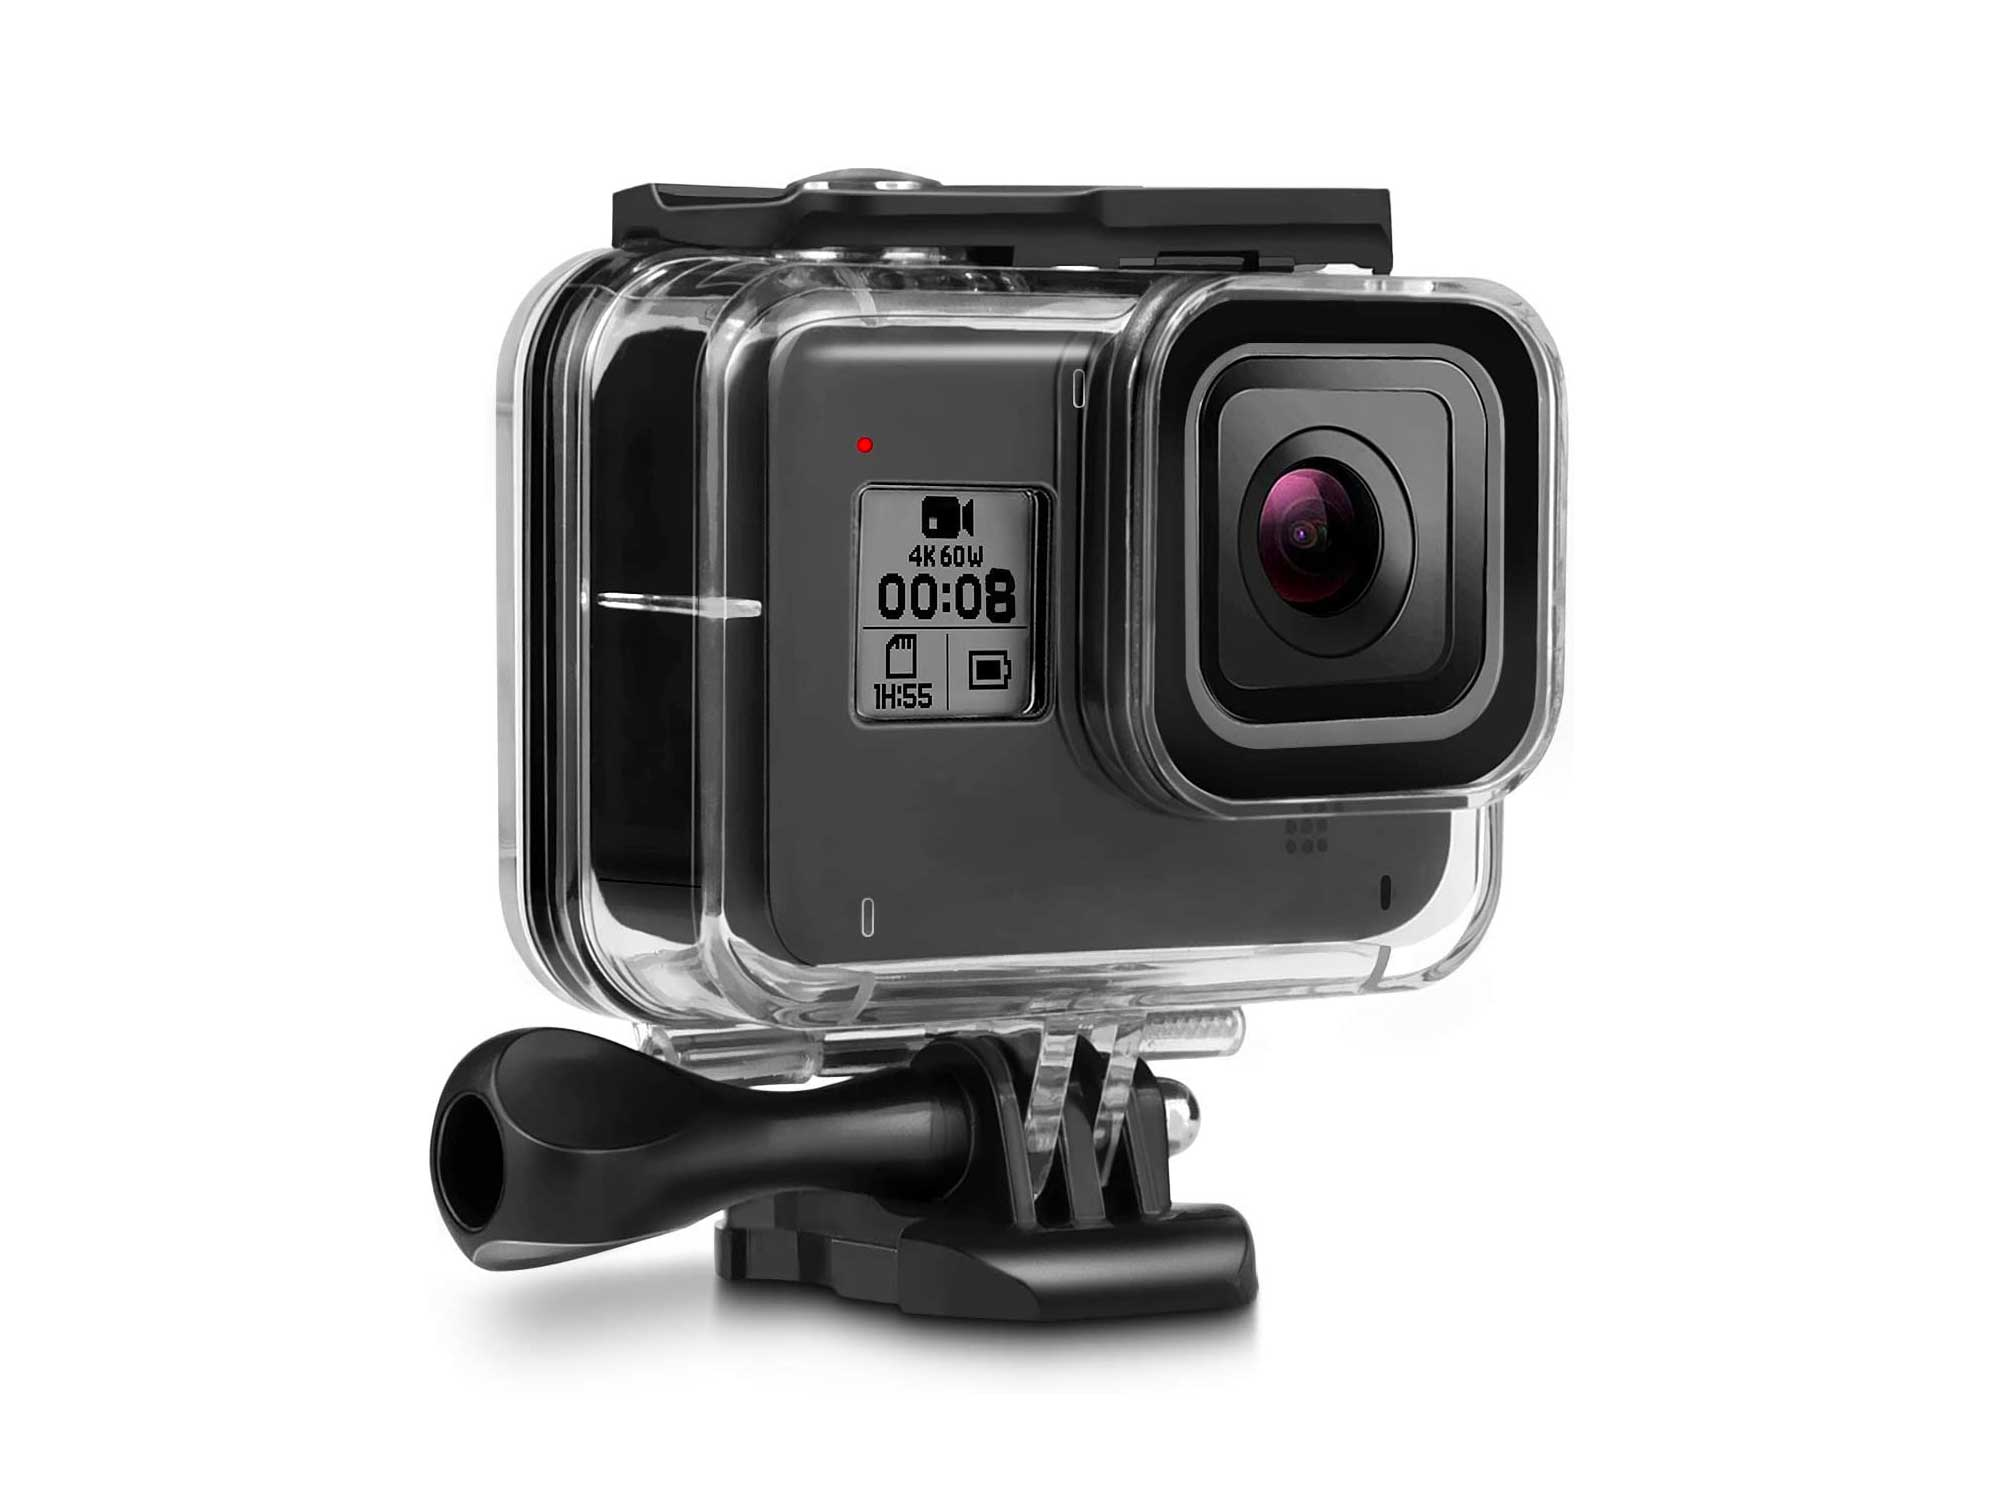 Deyard 60M Waterproof Case for GoPro Hero 8 Black Underwater Waterproof Protective Housing Case for GoPro Action Camera with Quick Release Mount and Thumbscrew